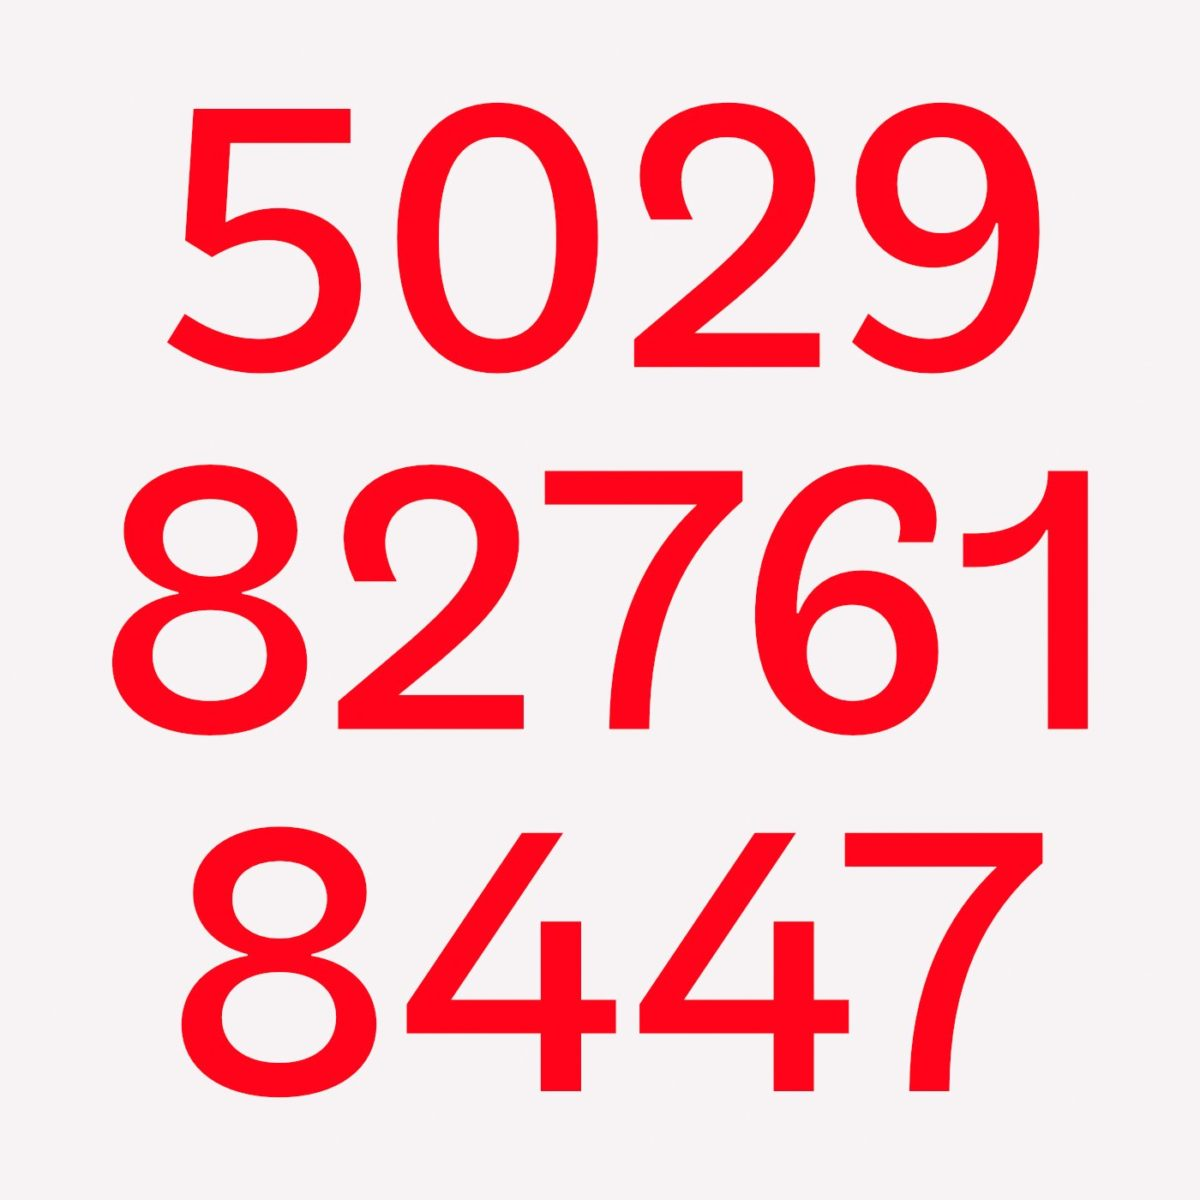 Sans serif grotesque typeface, TG Glifko, numbers.